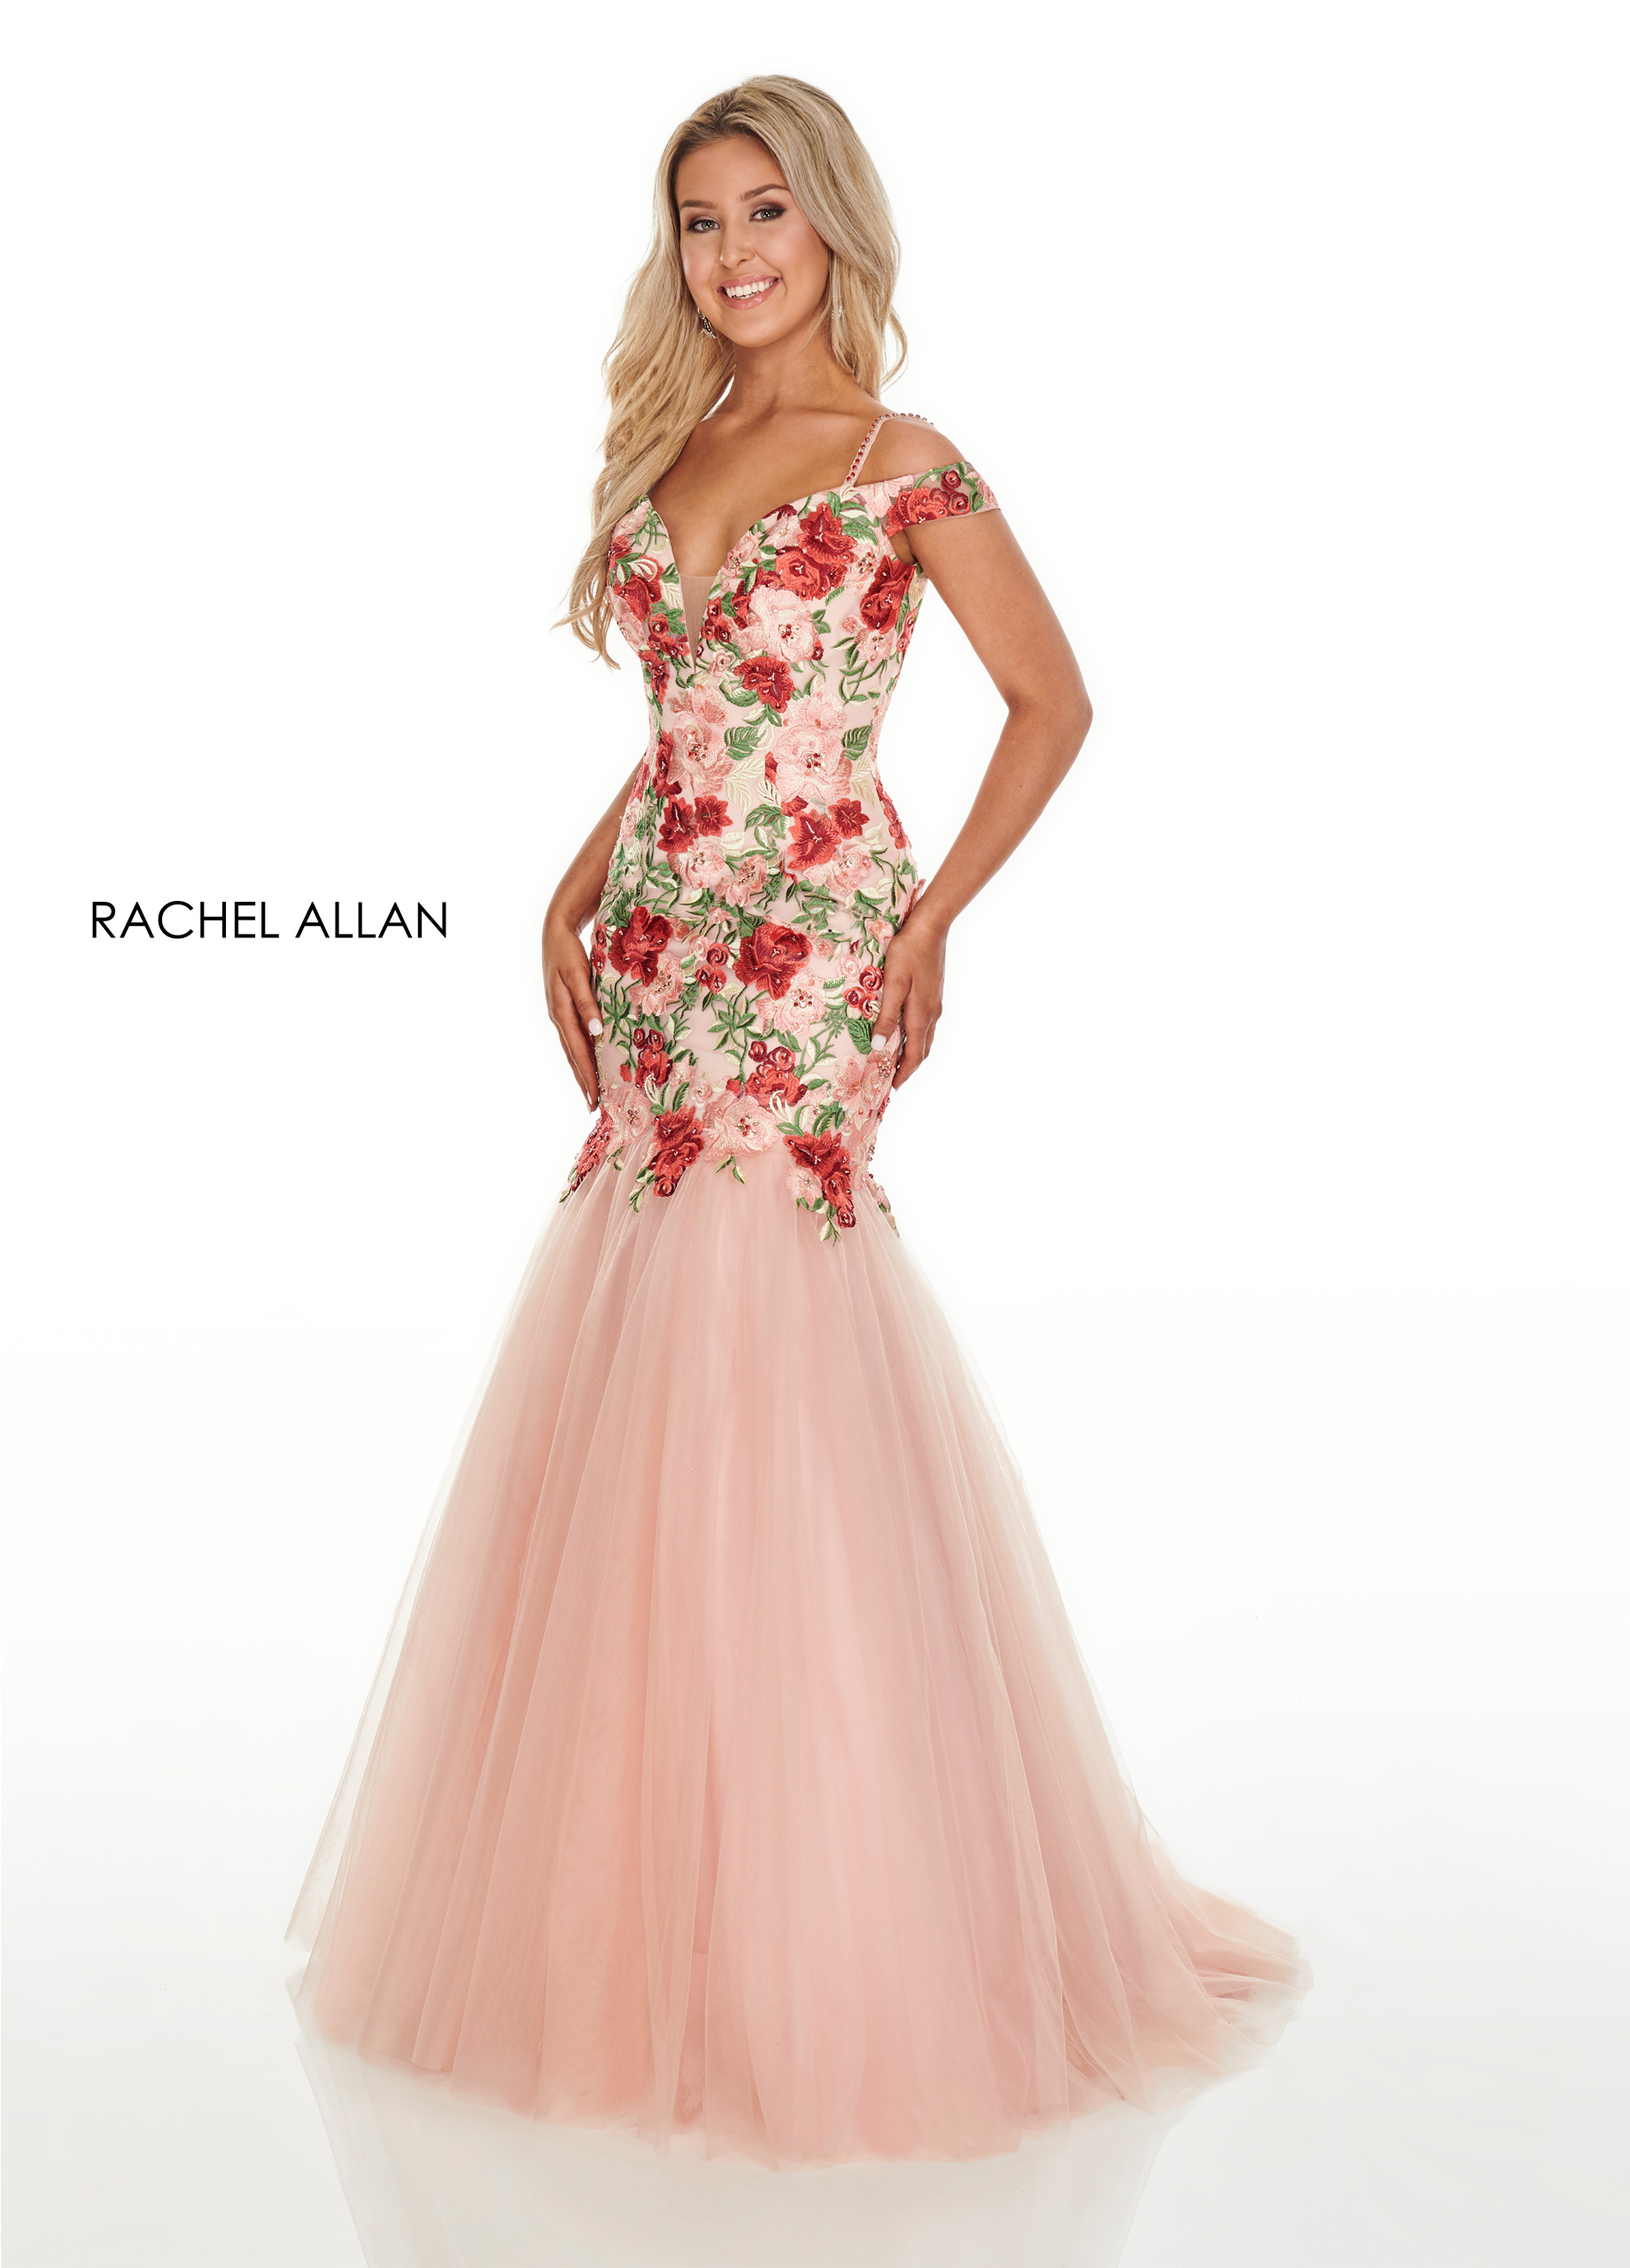 Off The Shoulder Mermaid Prom Dresses in Blush Color